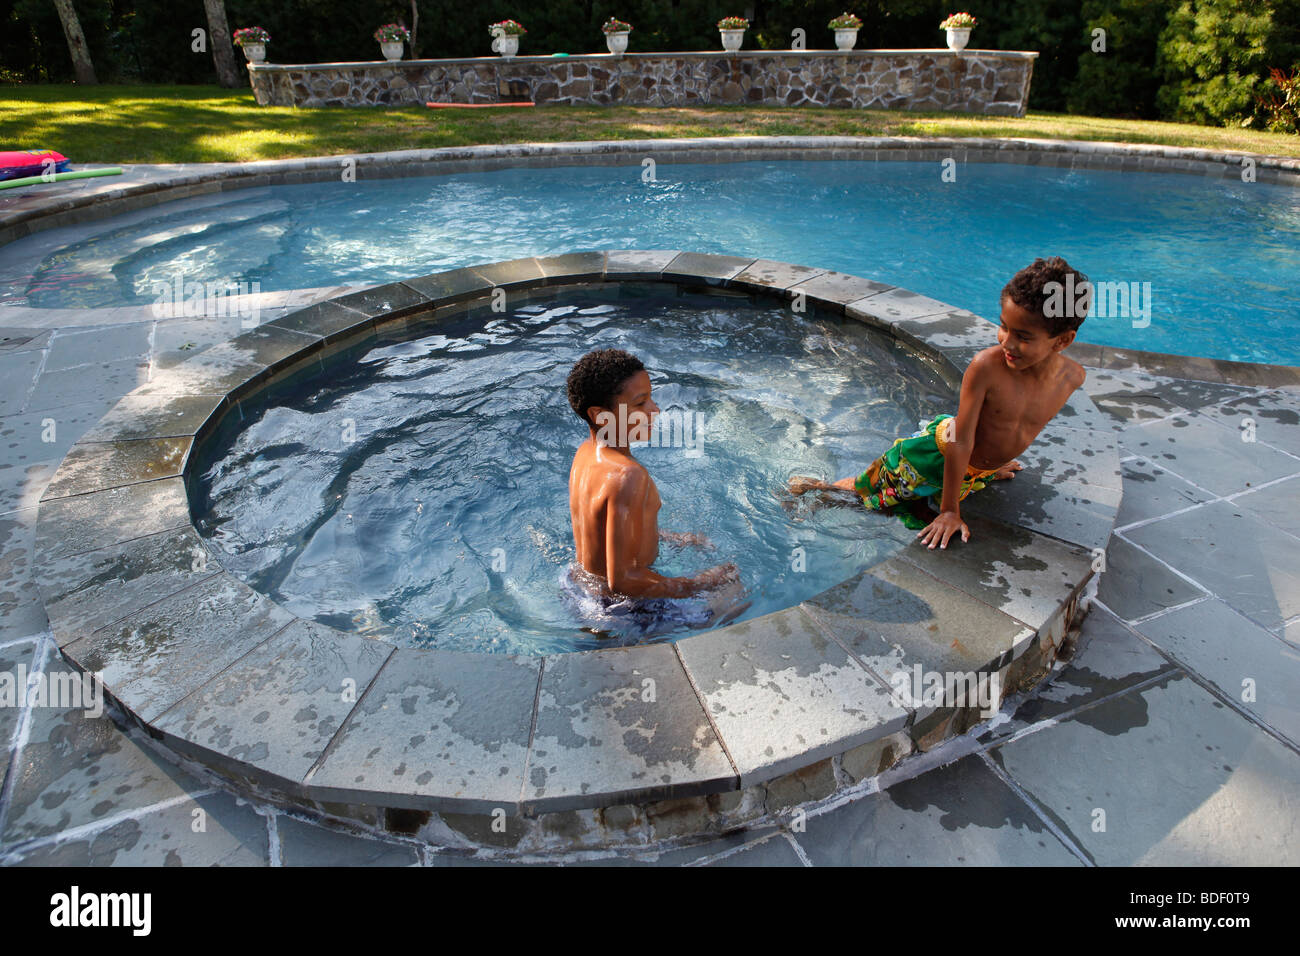 Two boys, eight and ten years old, play in a backyard swimming pool, Sag Harbor, New York - Stock Image